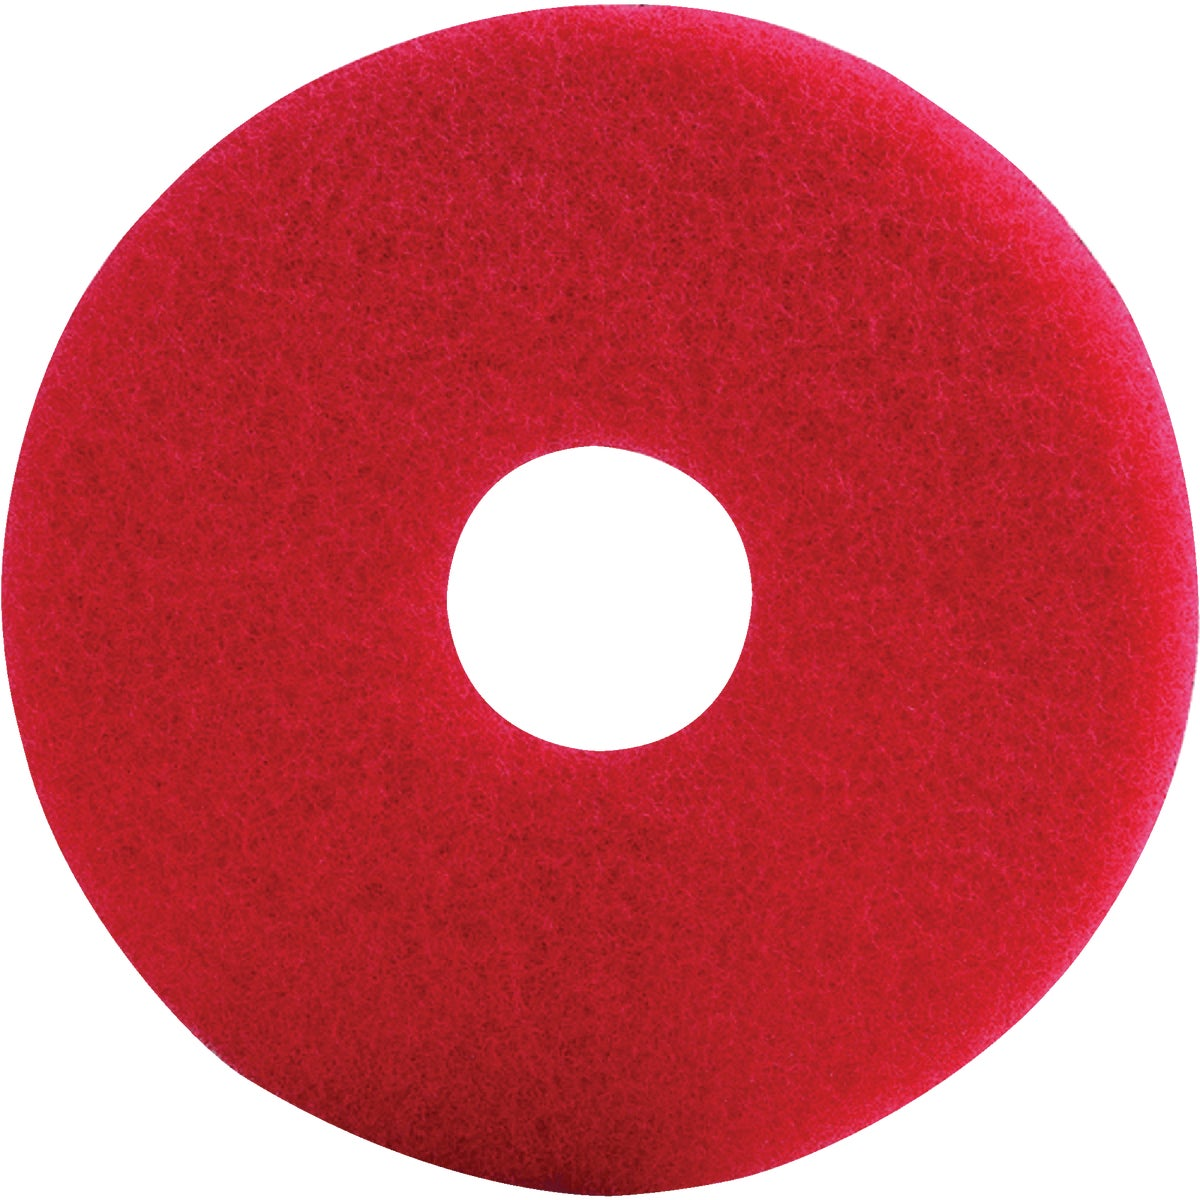 "17"" RED SCRUB PAD"